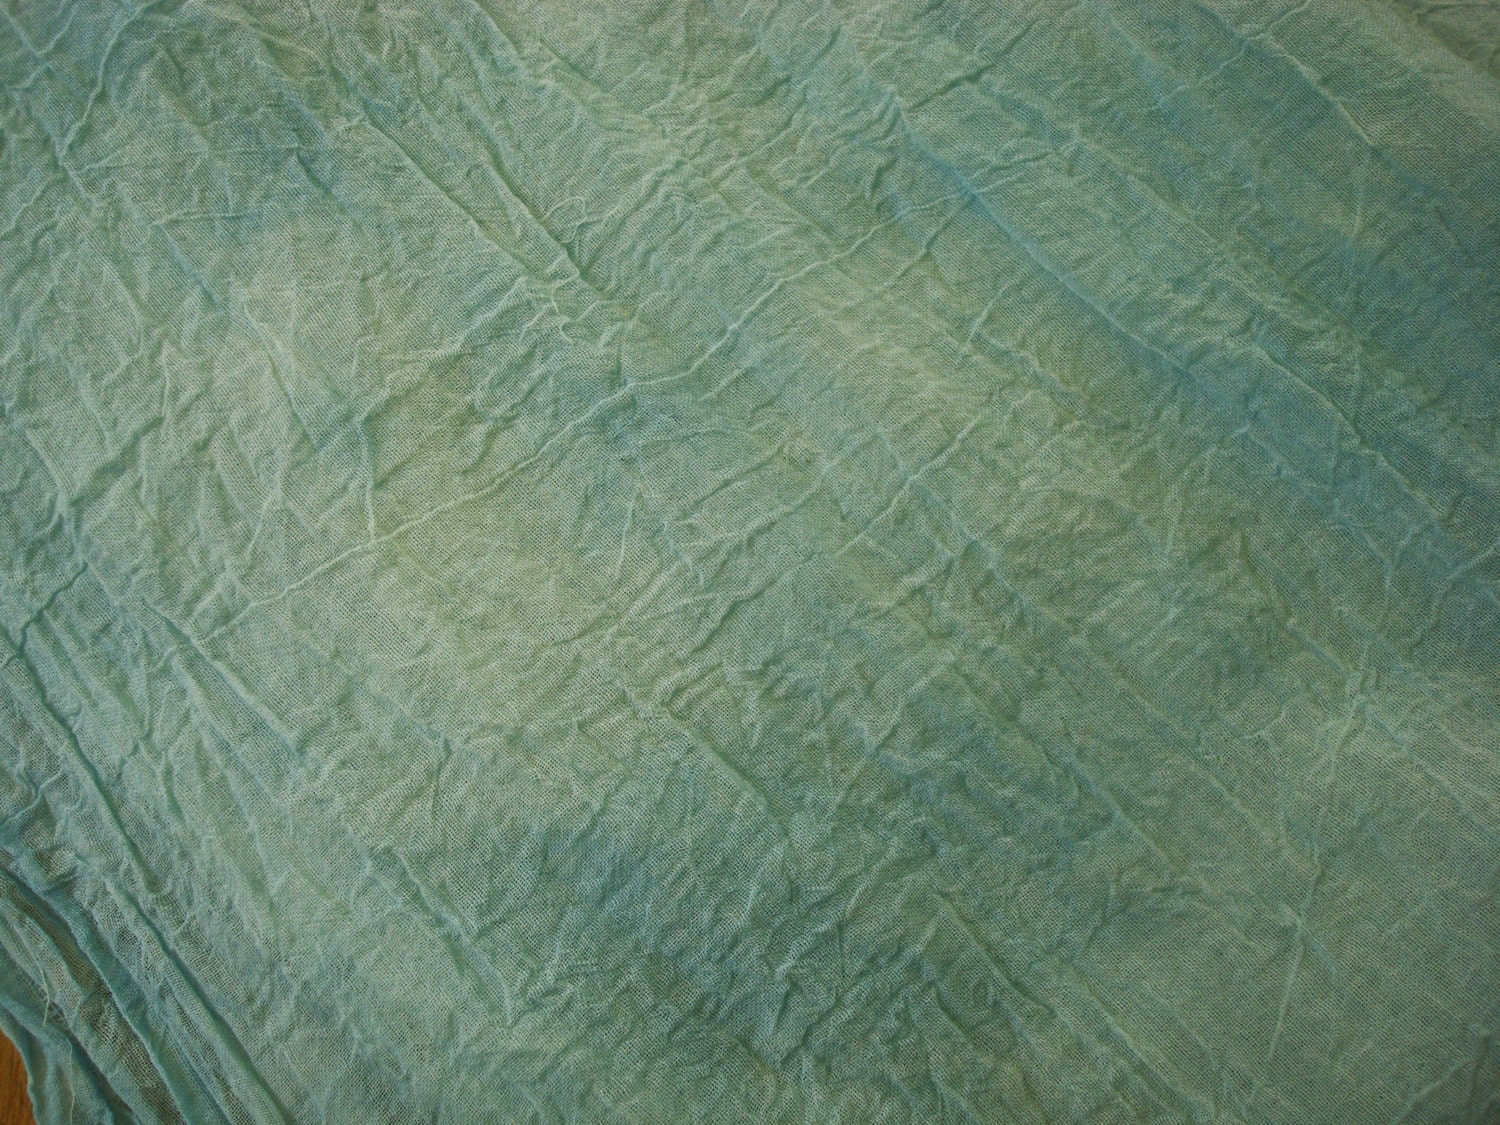 Home Decor Fabrics By The Yard: Blue Crinkle Cotton Fabric By The Yard Blue Home Decor